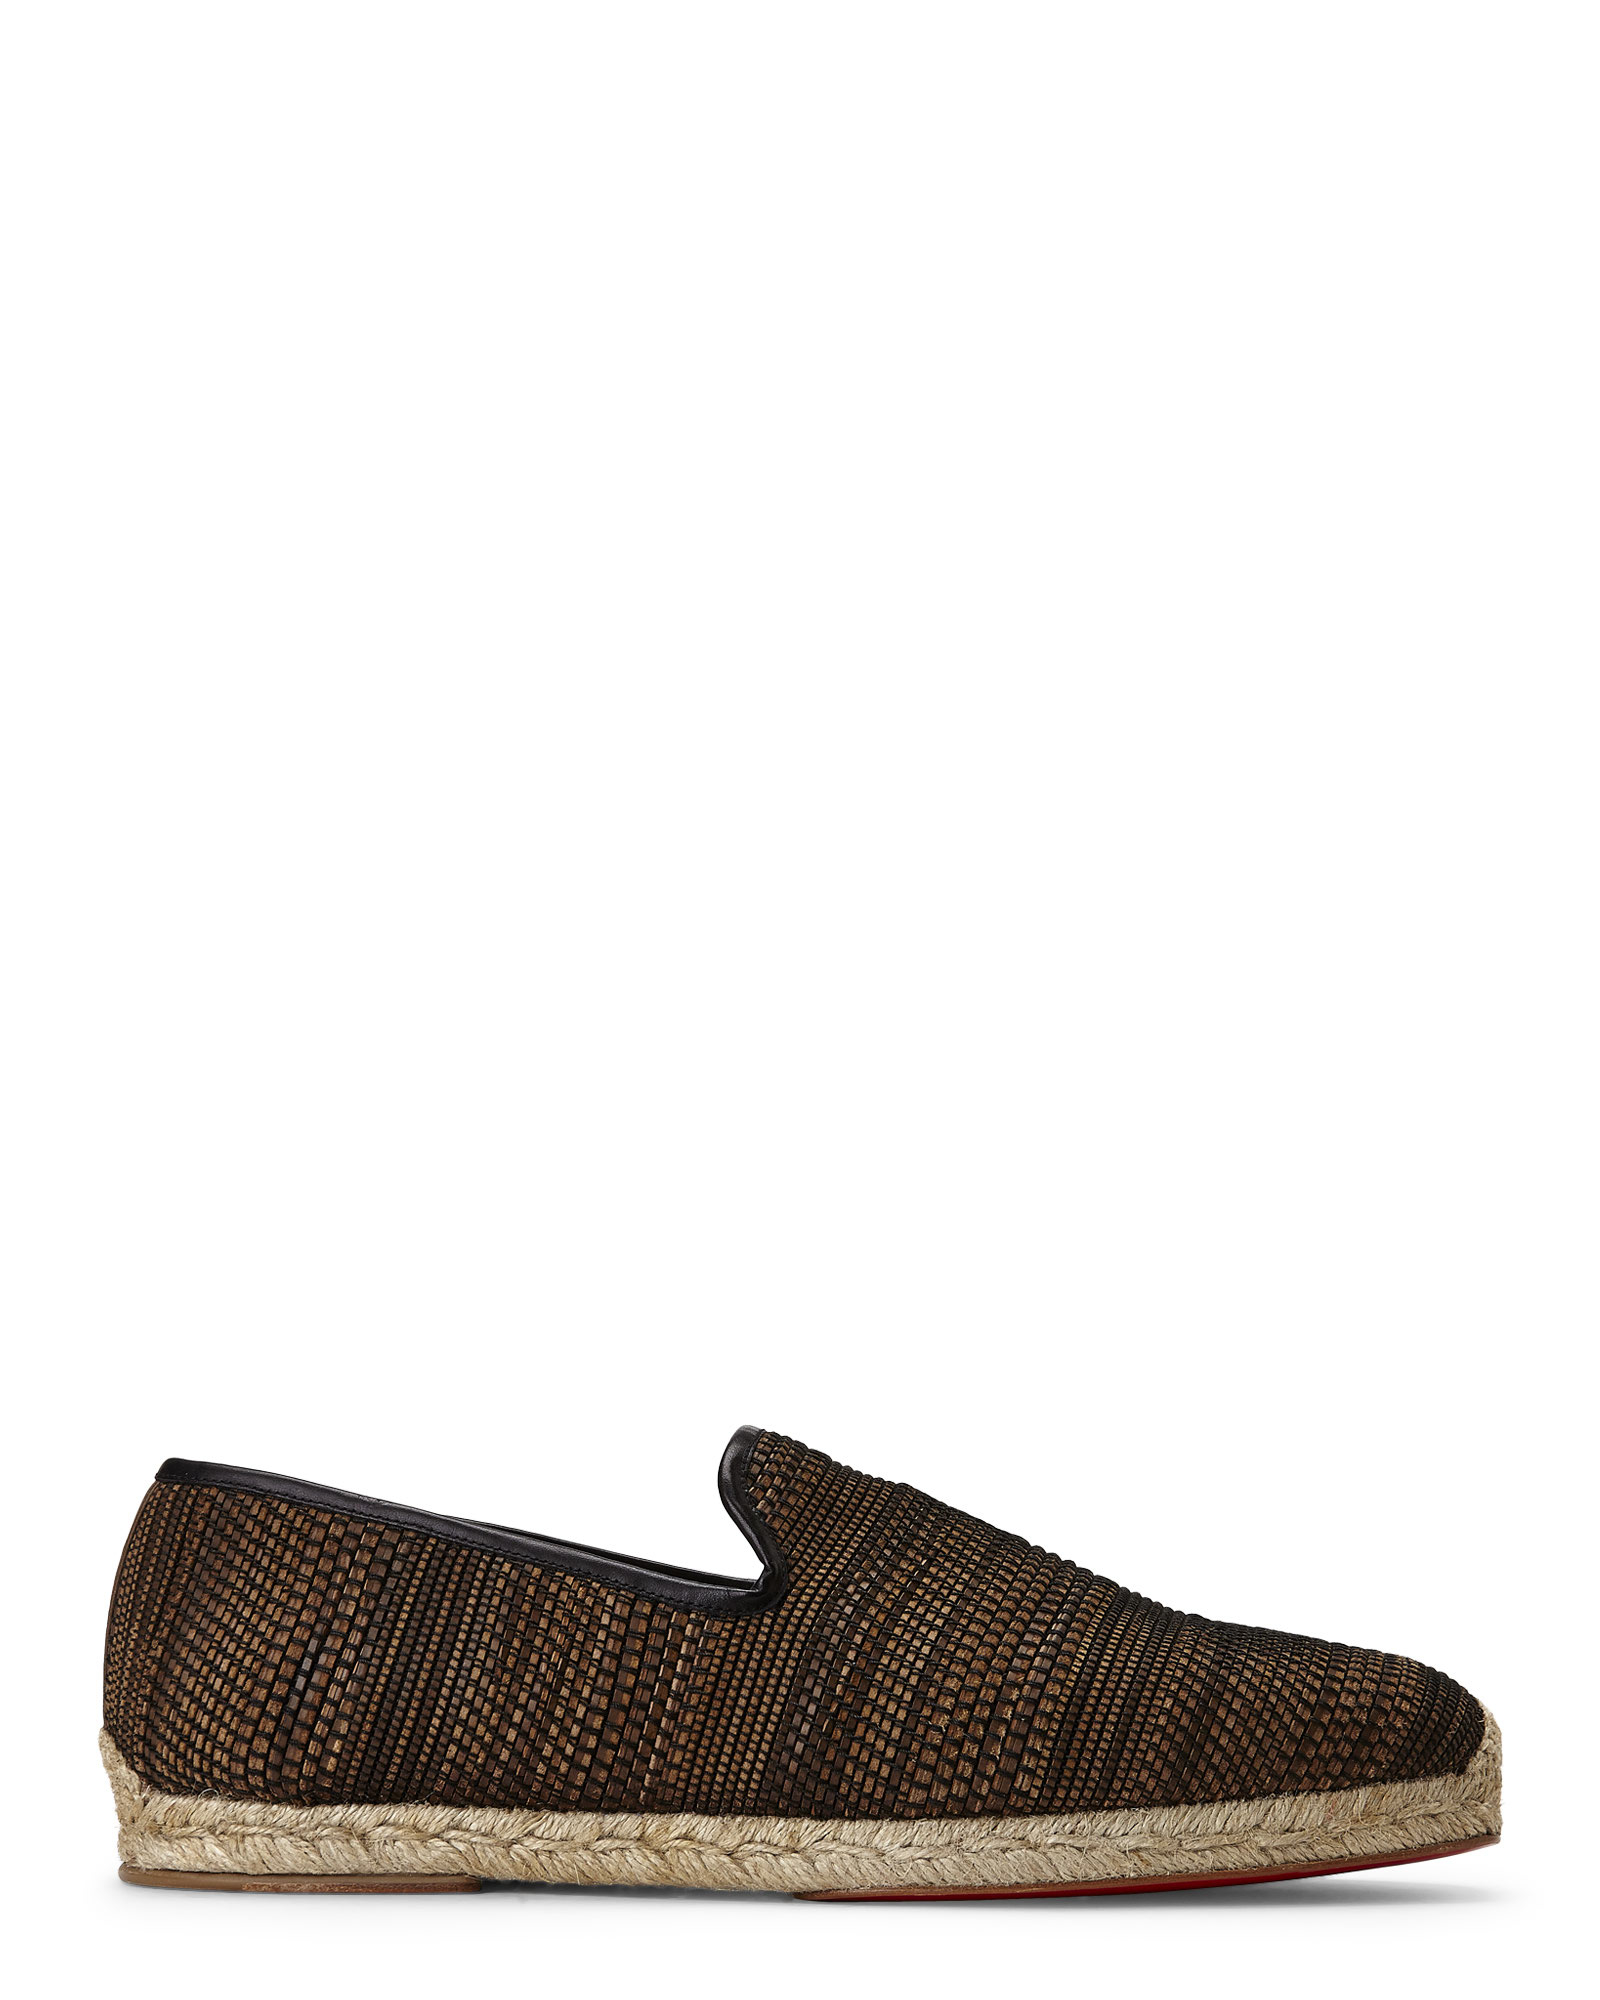 best replica shoes - Christian louboutin Coffee \u0026amp; Black Relax Espadrilles in Brown for ...